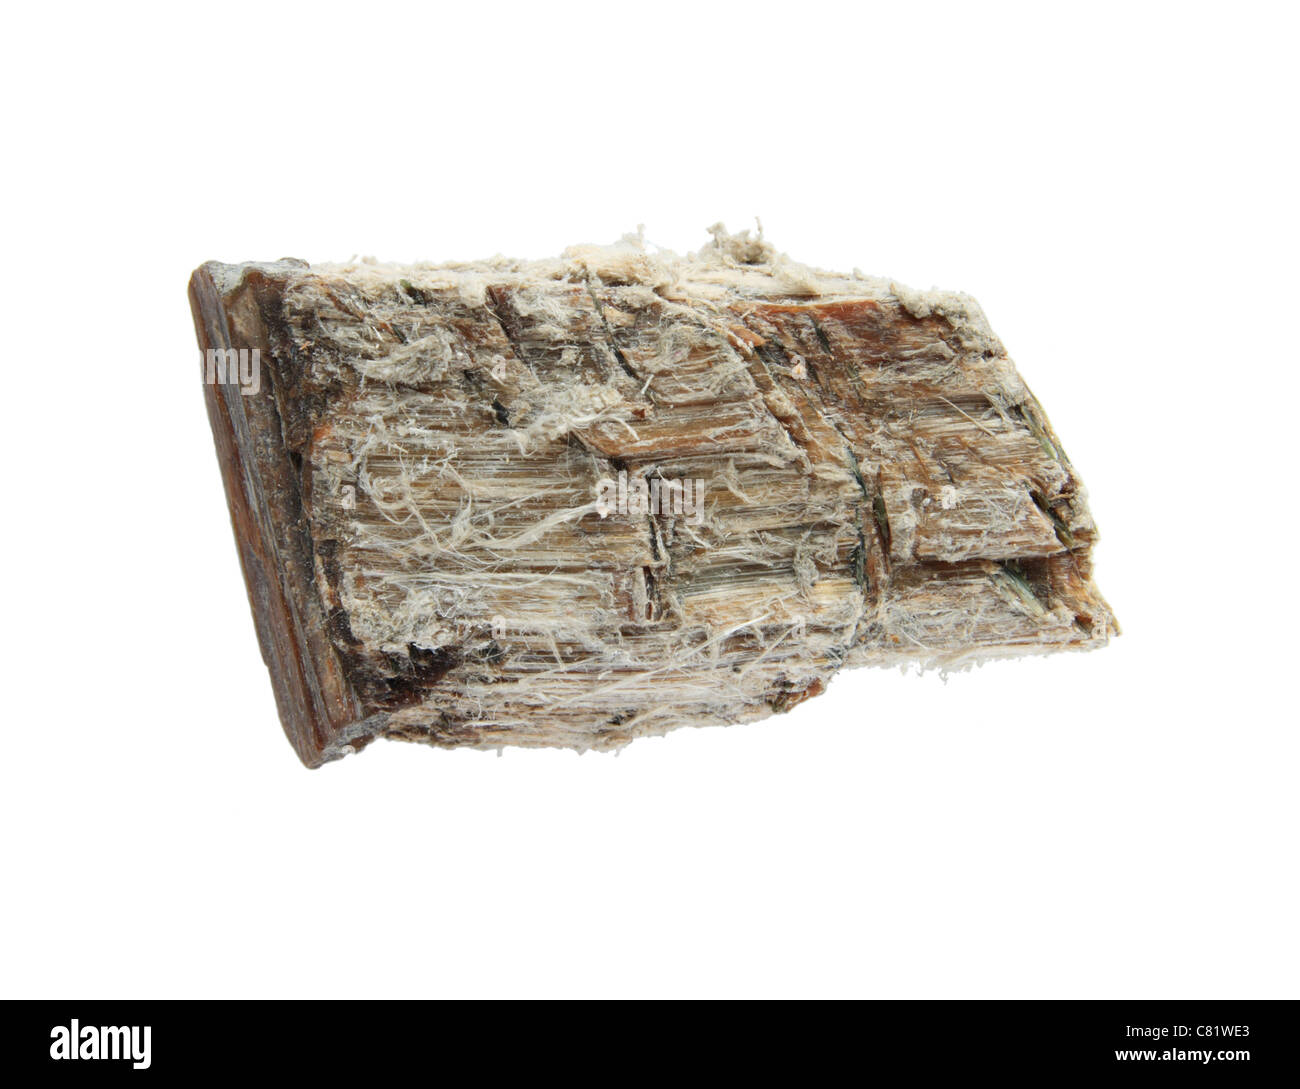 asbestos mineral sample isolated on white - Stock Image